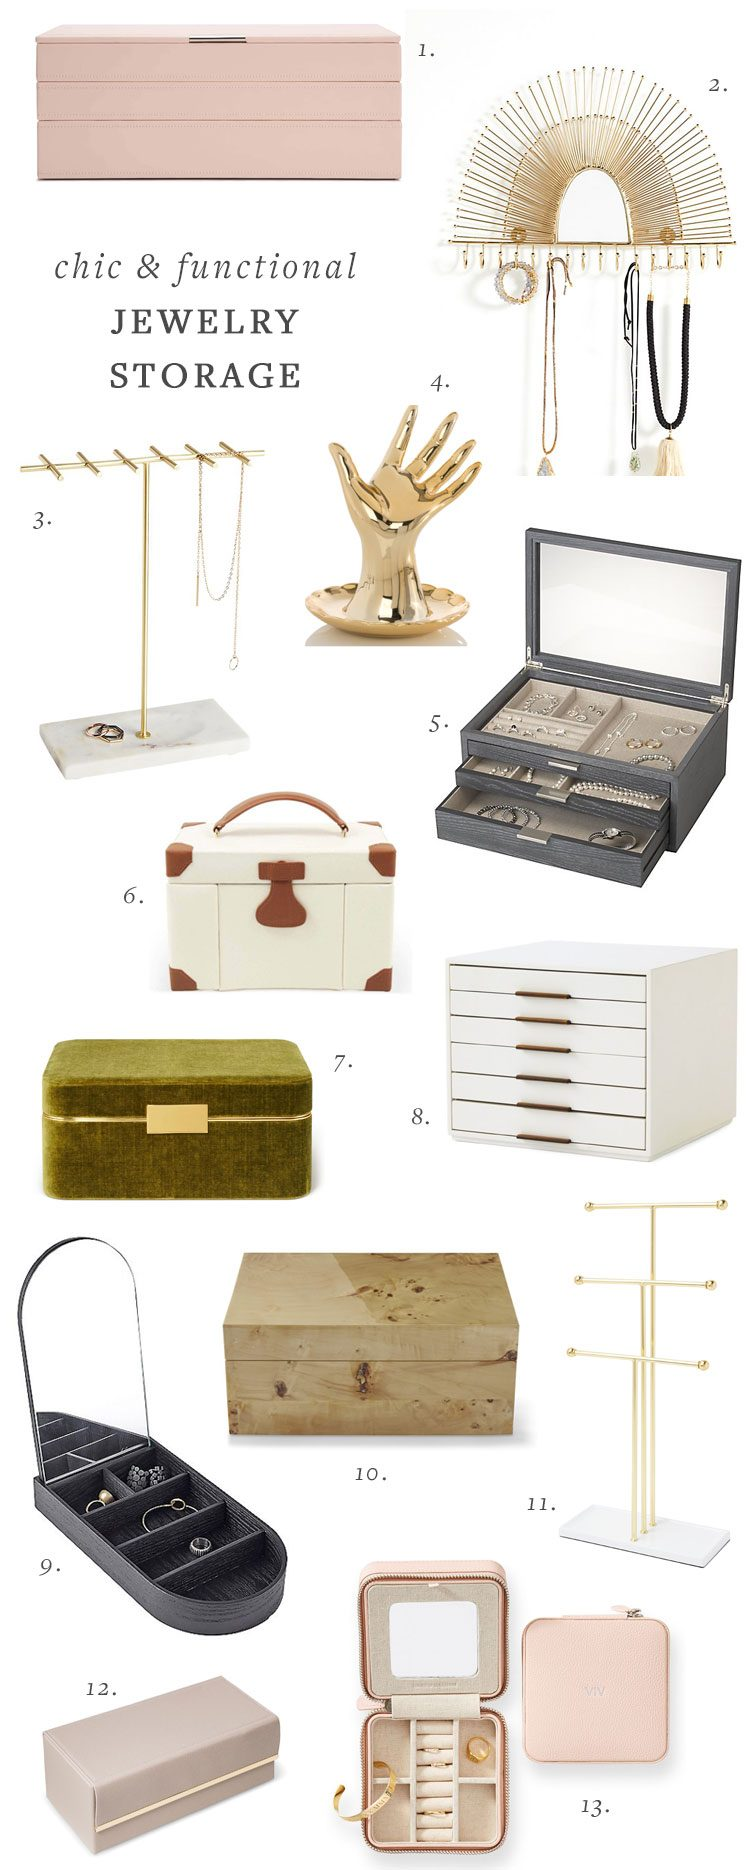 20+ Functional and Stylish Jewelry Storage Ideas! #jewelrystorage #smallspaces #smallstorage #jewelrybox #jewelrystand #organization #storage #storageideas